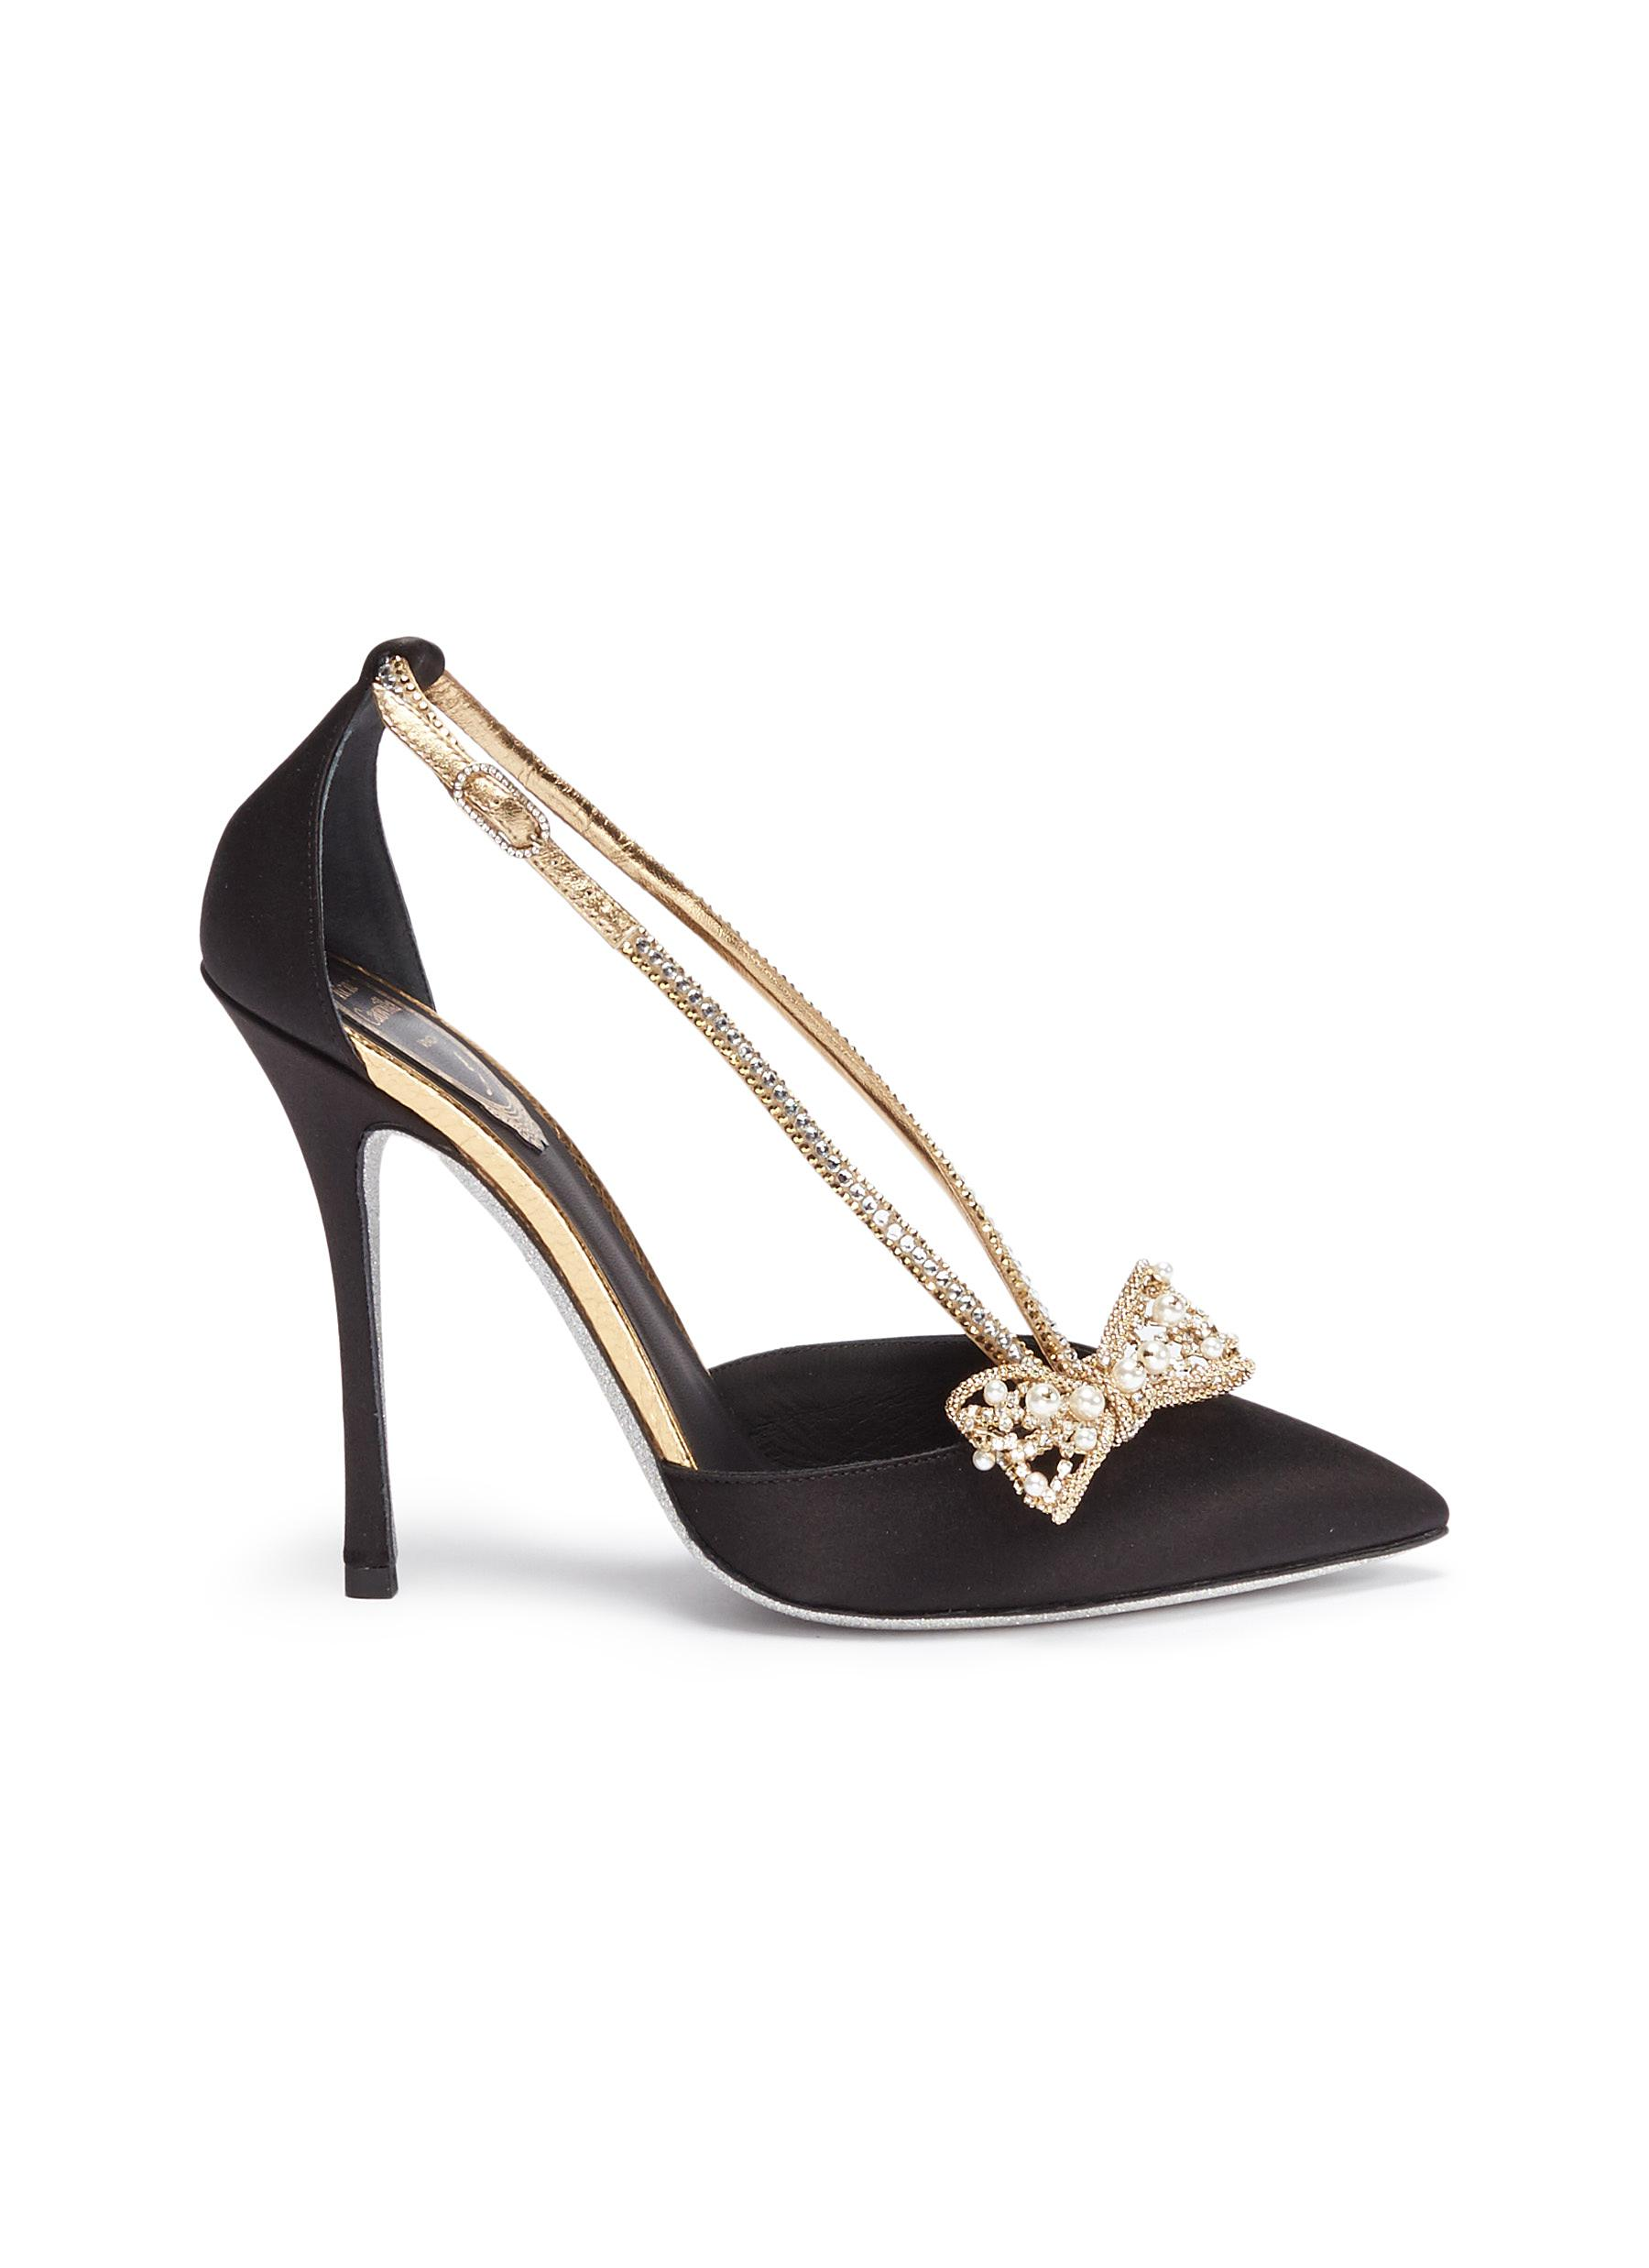 Strass strap faux pearl bow satin dOrsay pumps by René Caovilla